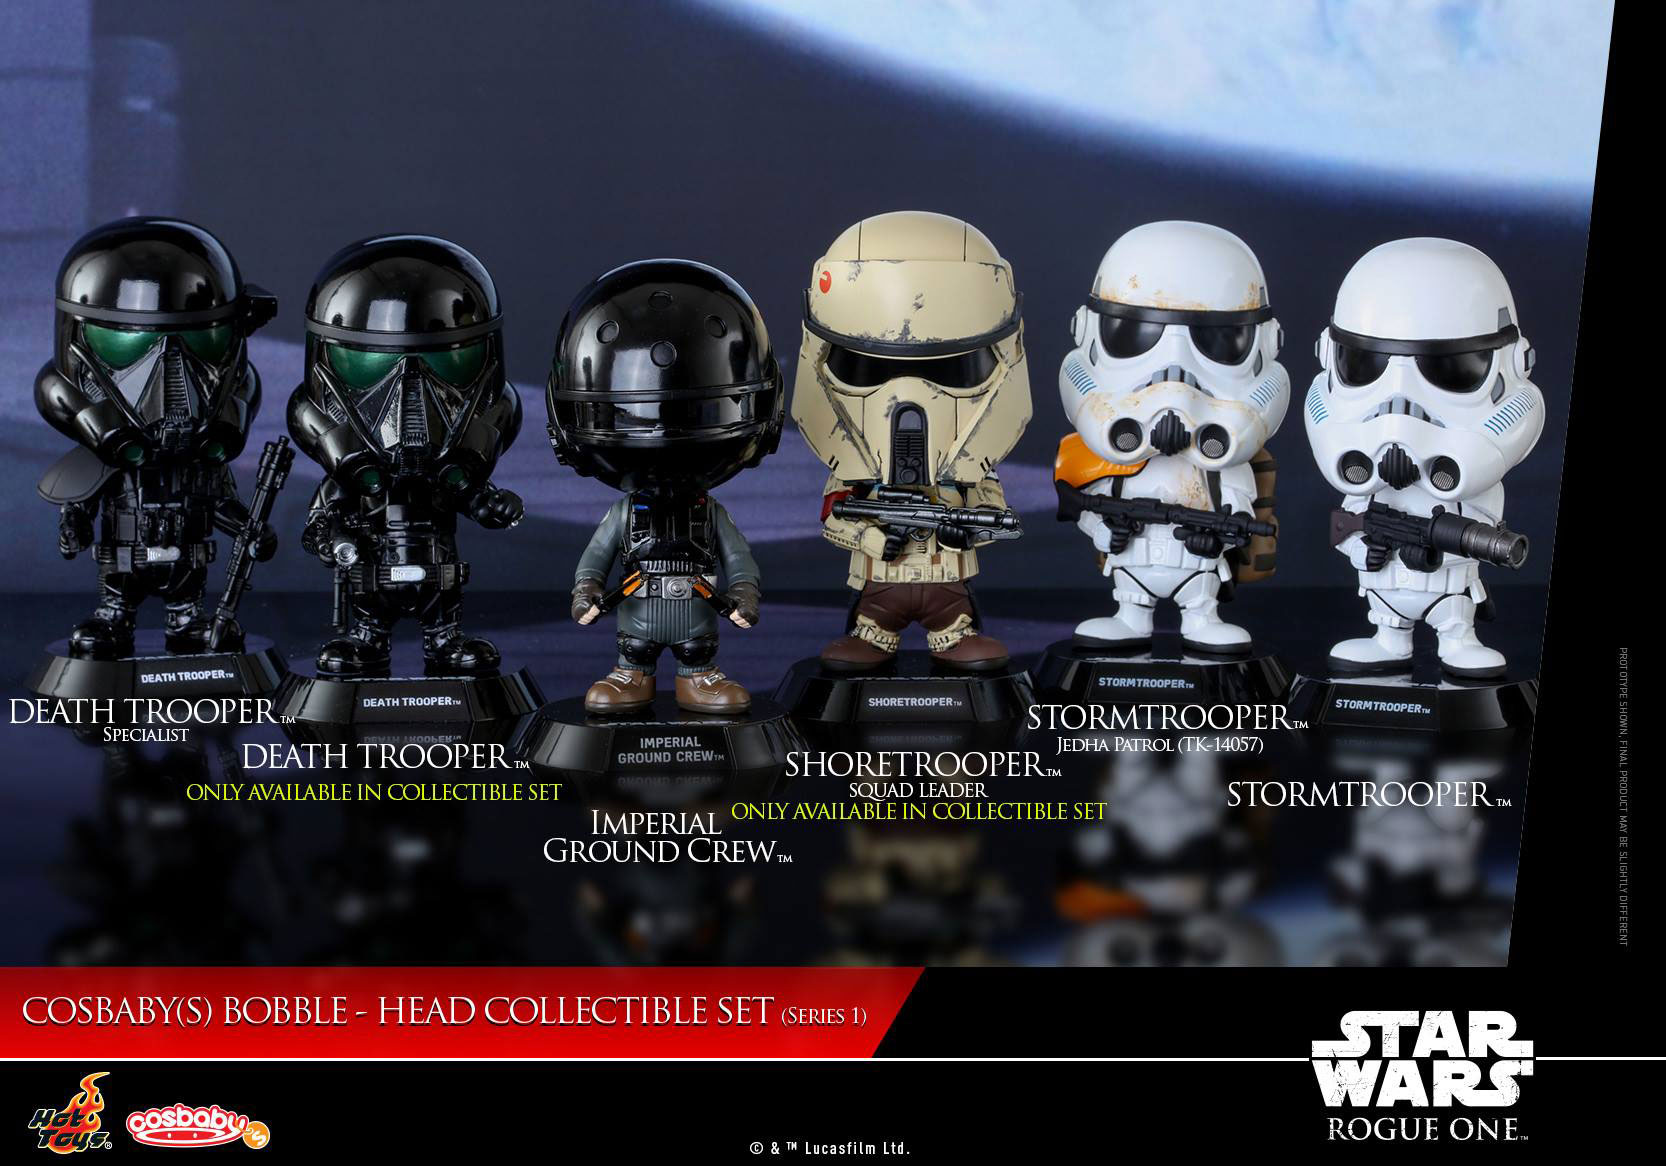 Hot Toys Star Wars Rogue One Cosbaby Figures Series 1